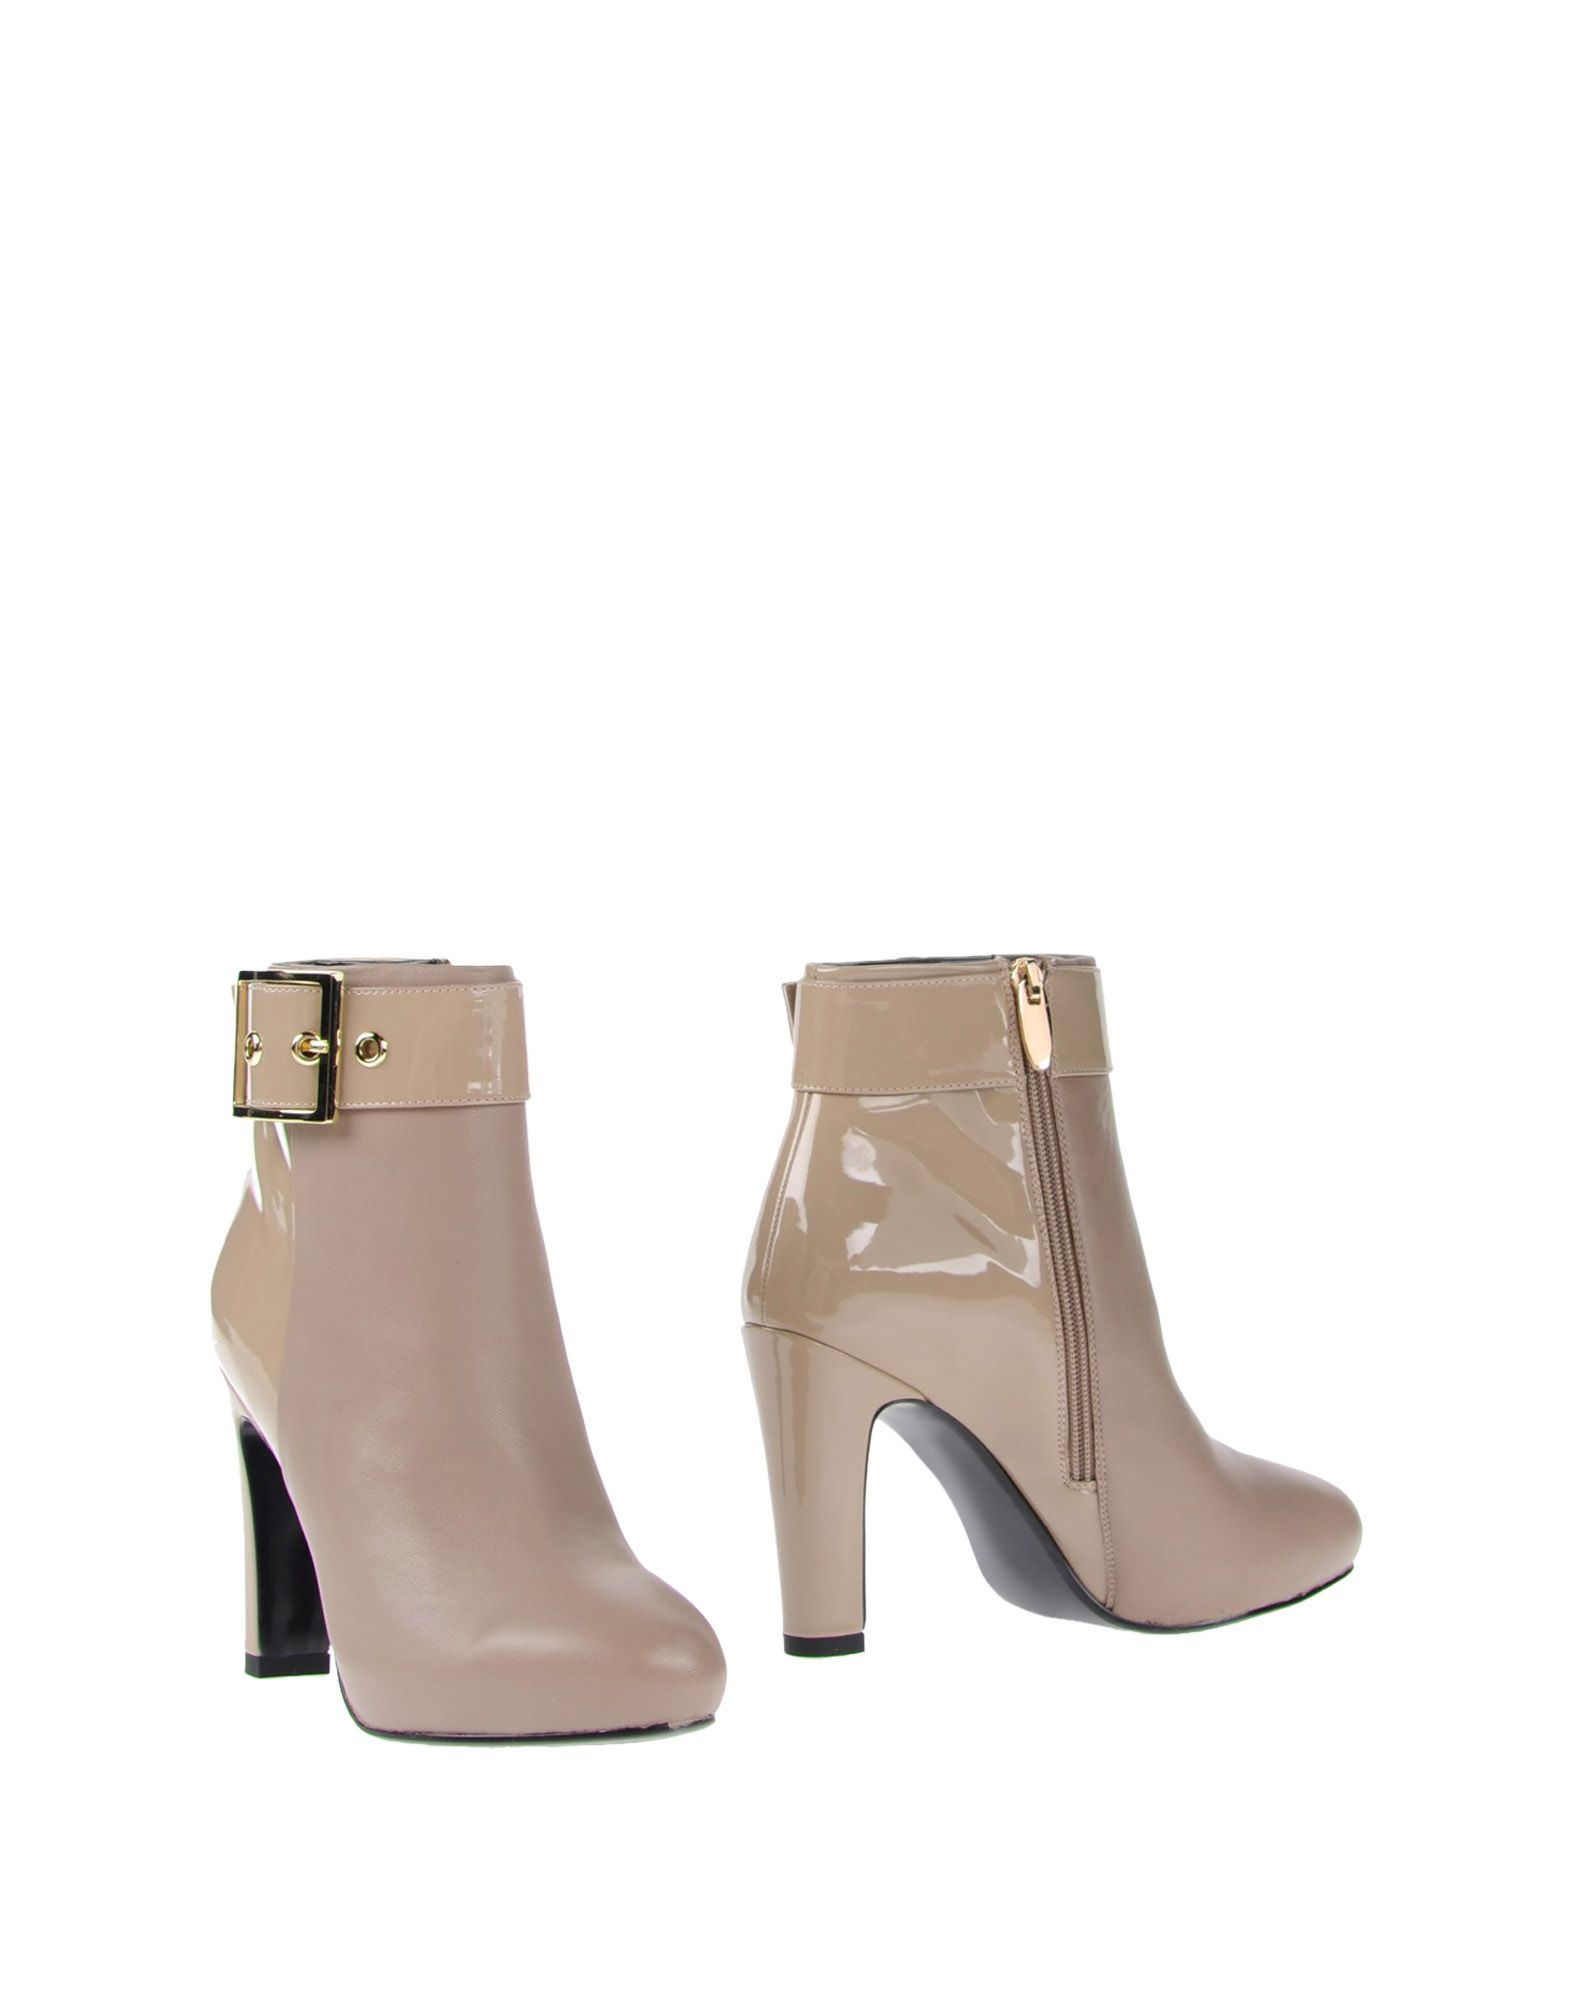 Luciano Barachini Ankle Boot - Women Luciano on Barachini Ankle Boots online on Luciano  Australia - 44879069KP 8d20cd